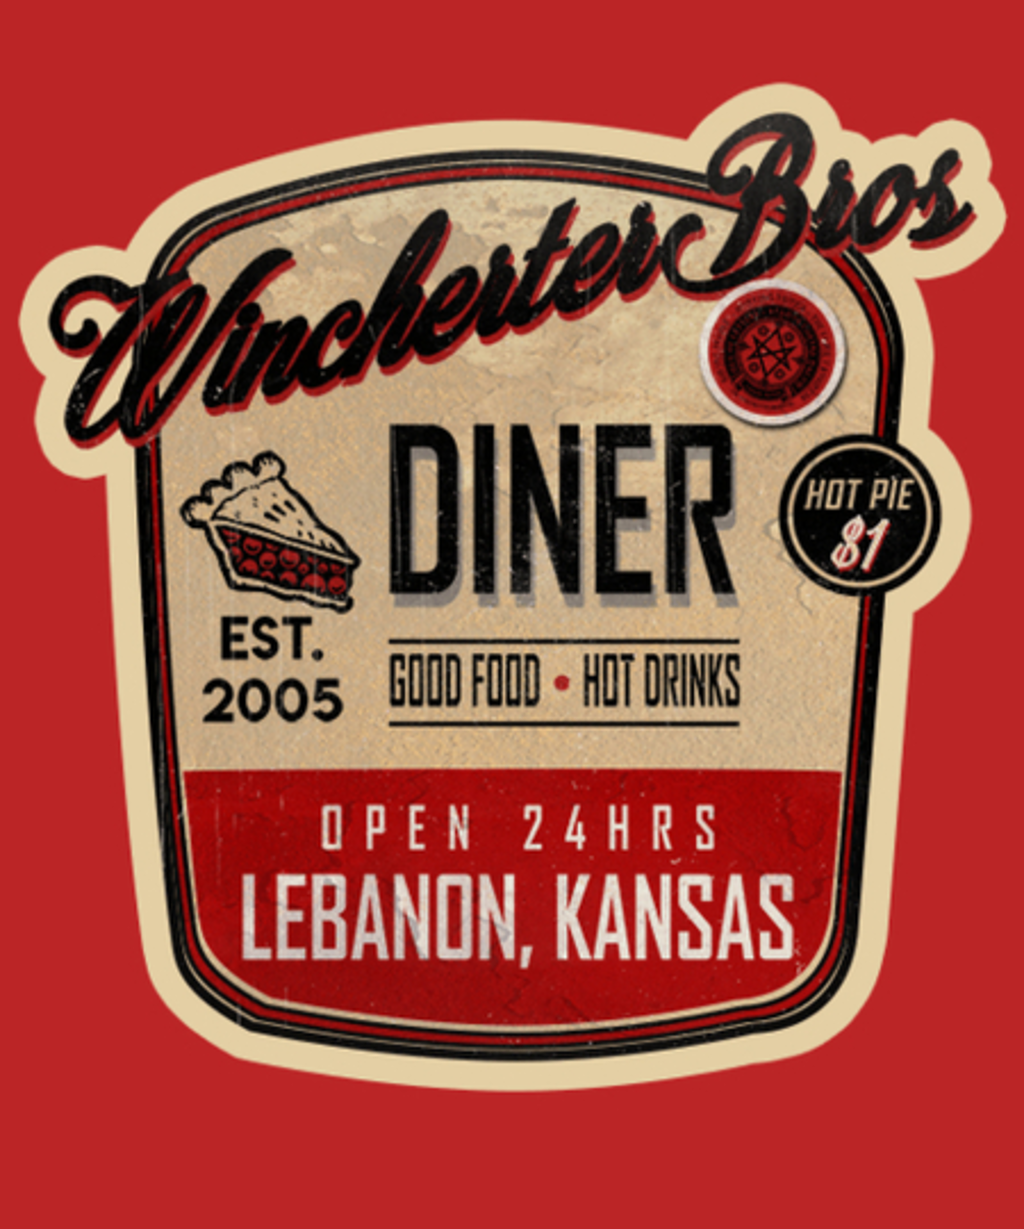 Qwertee: The Winchester Bros Diner